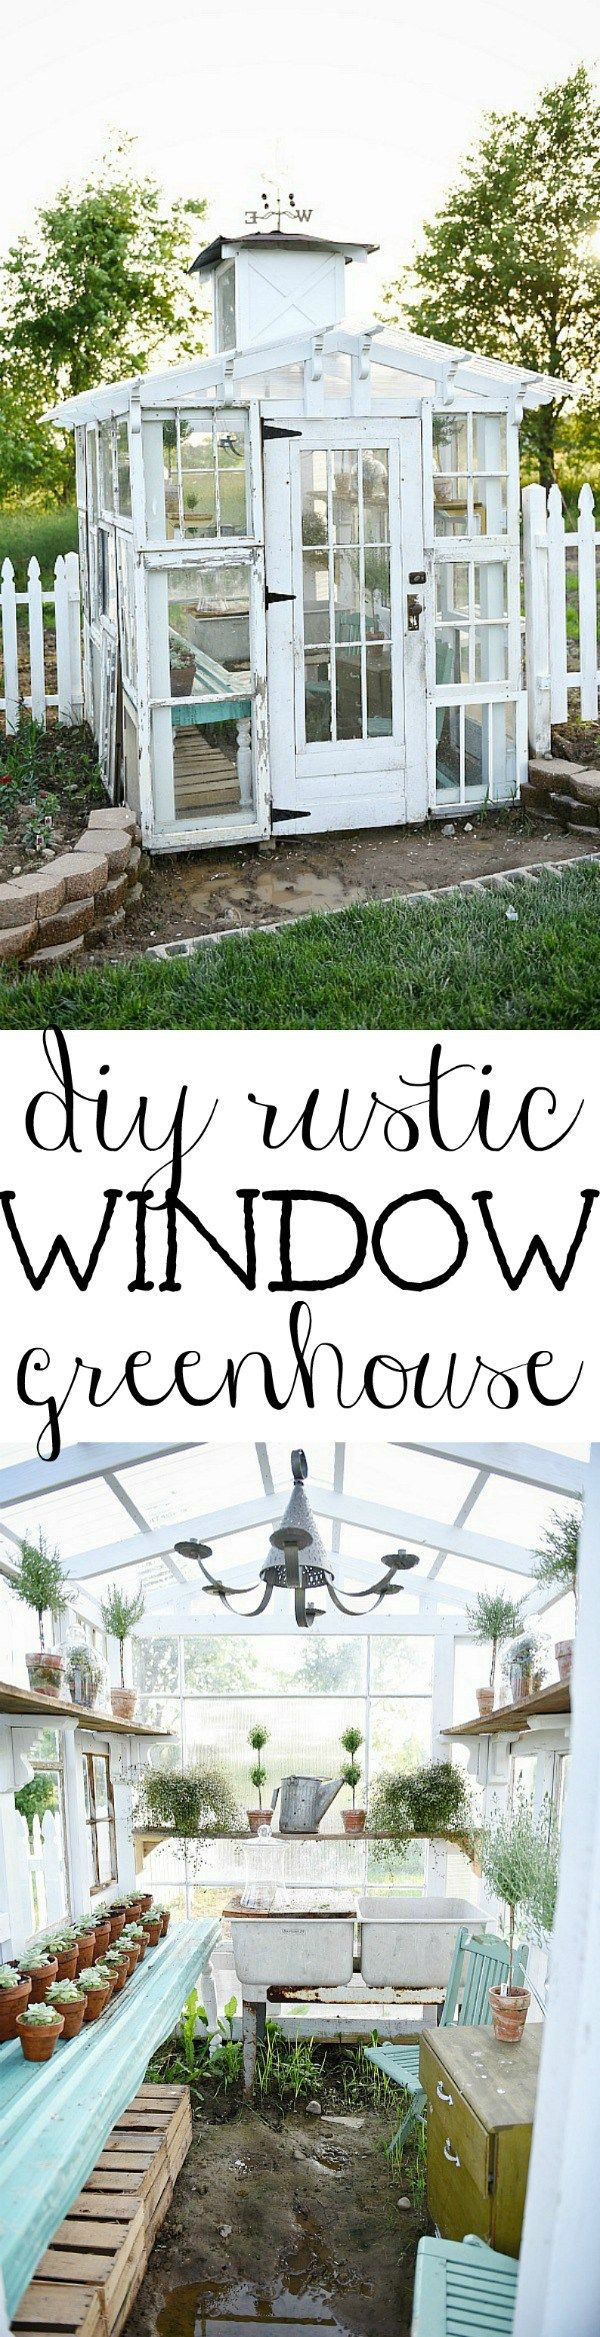 DIY Window Greenhouse